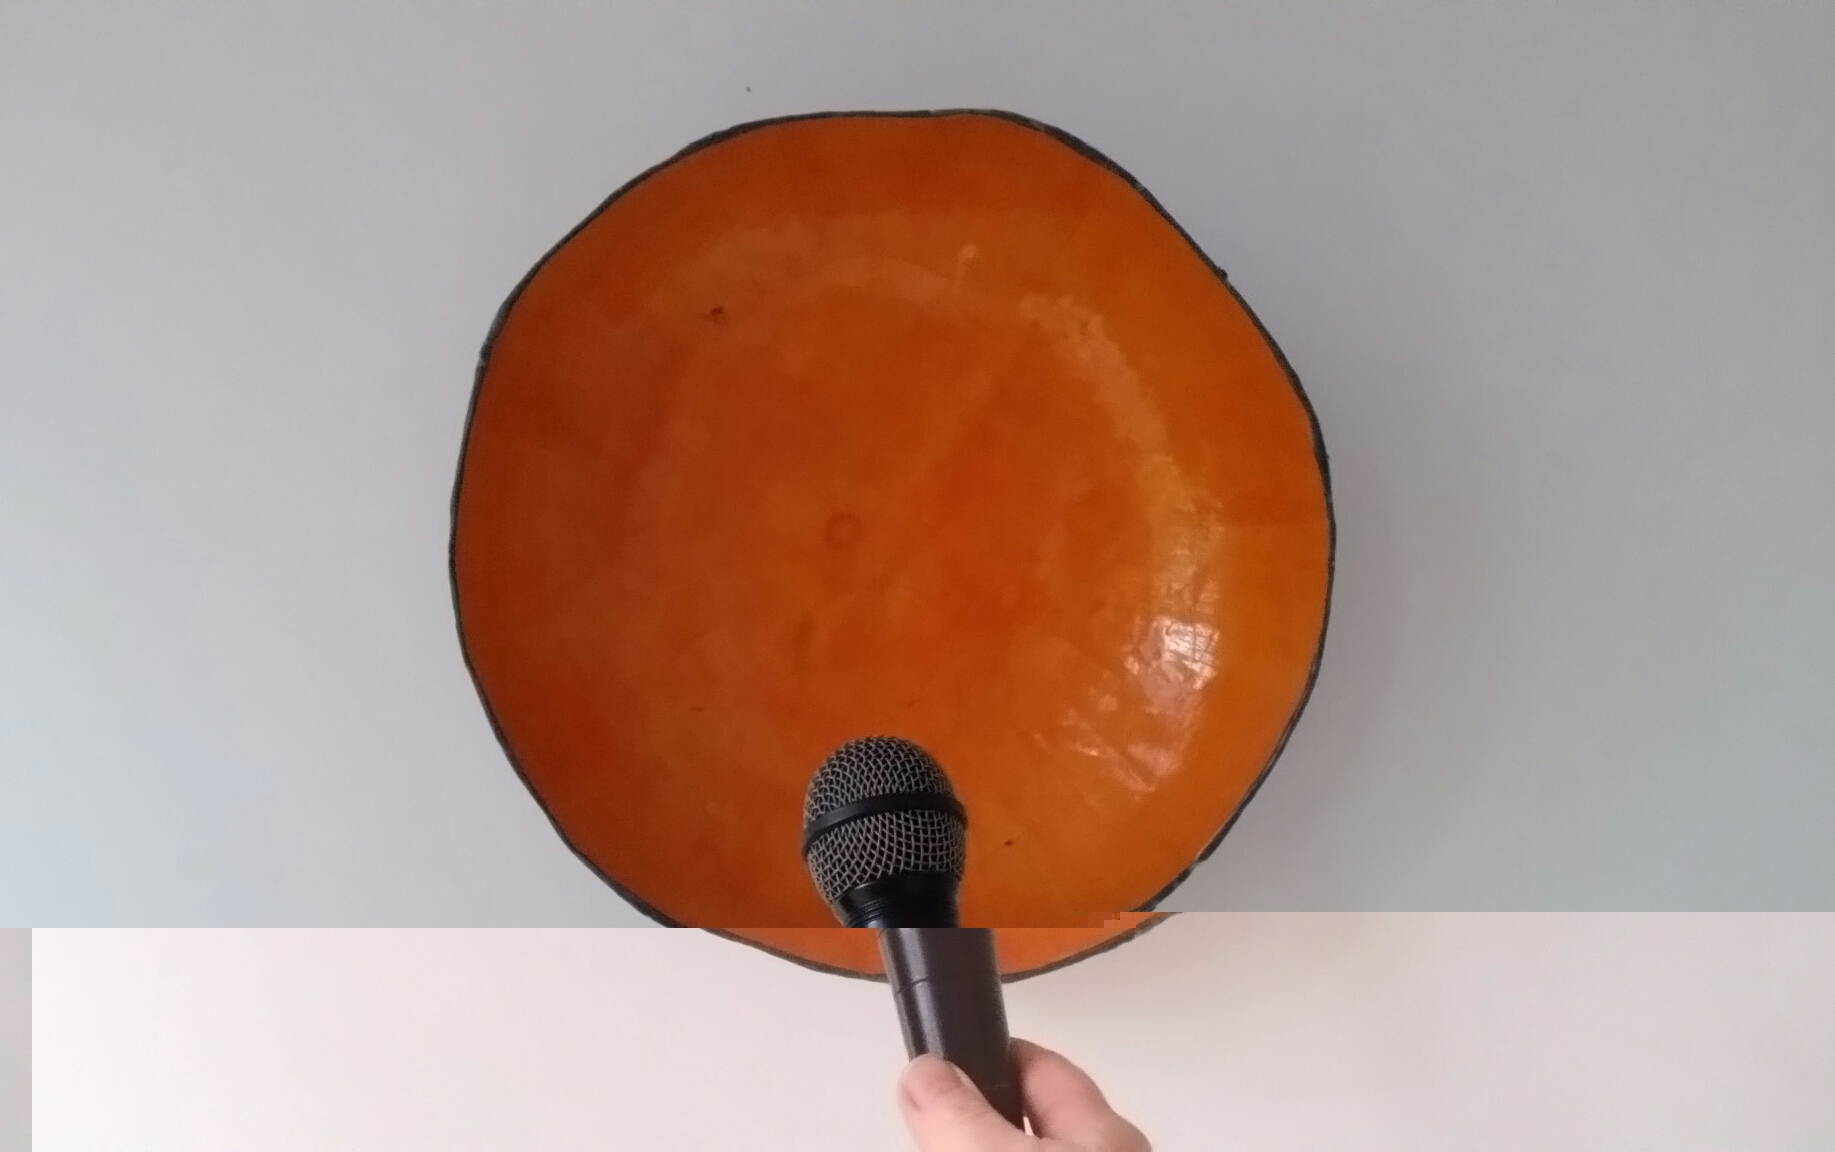 Orange bowl and microphone